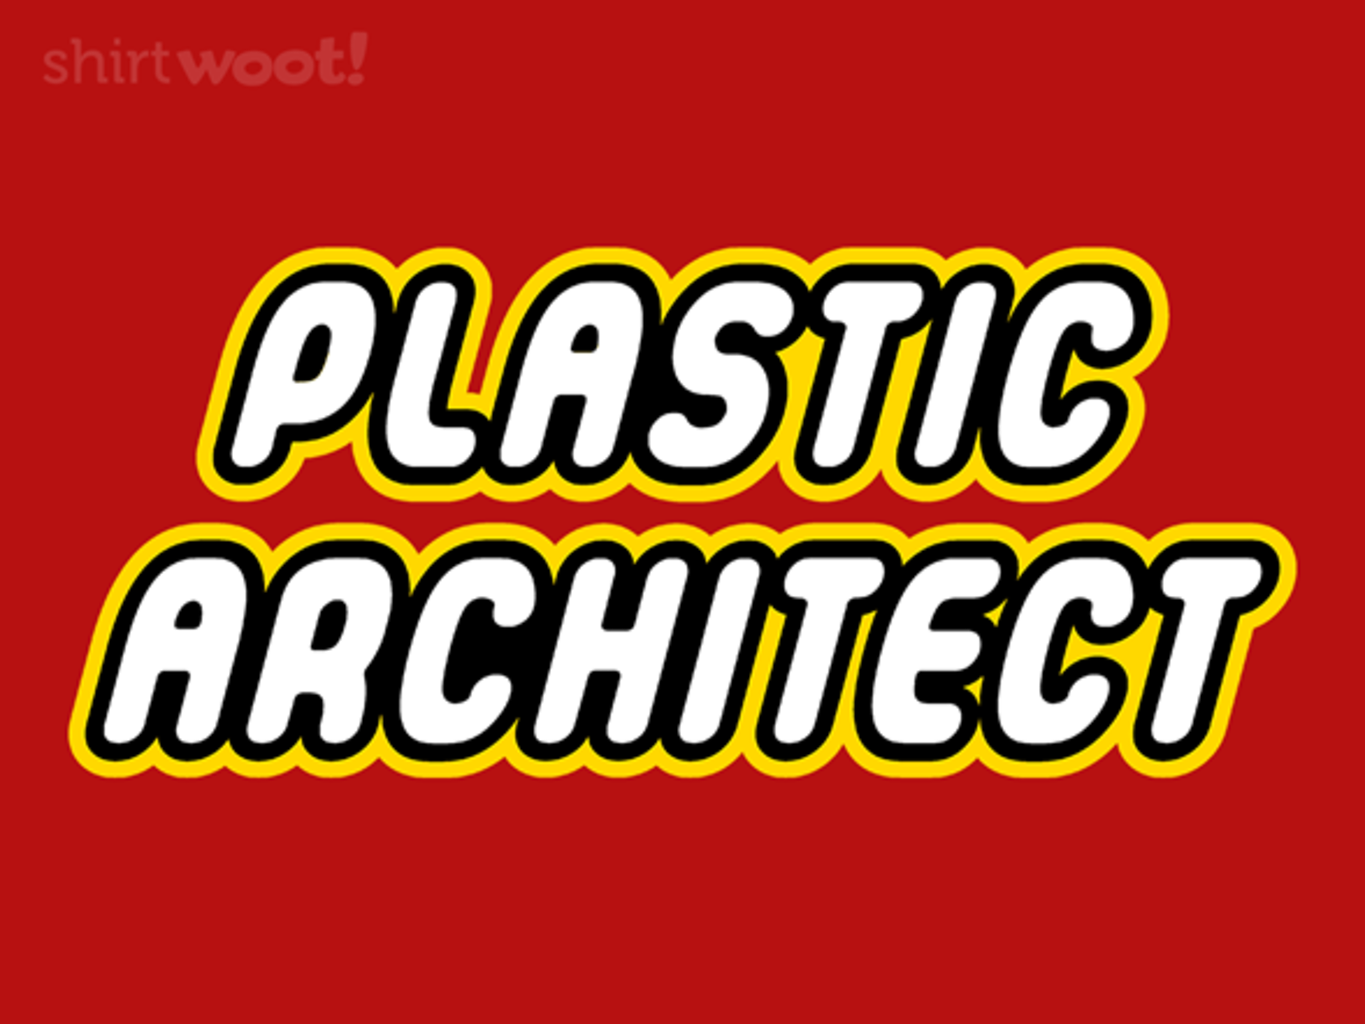 Woot!: Plastic Architect